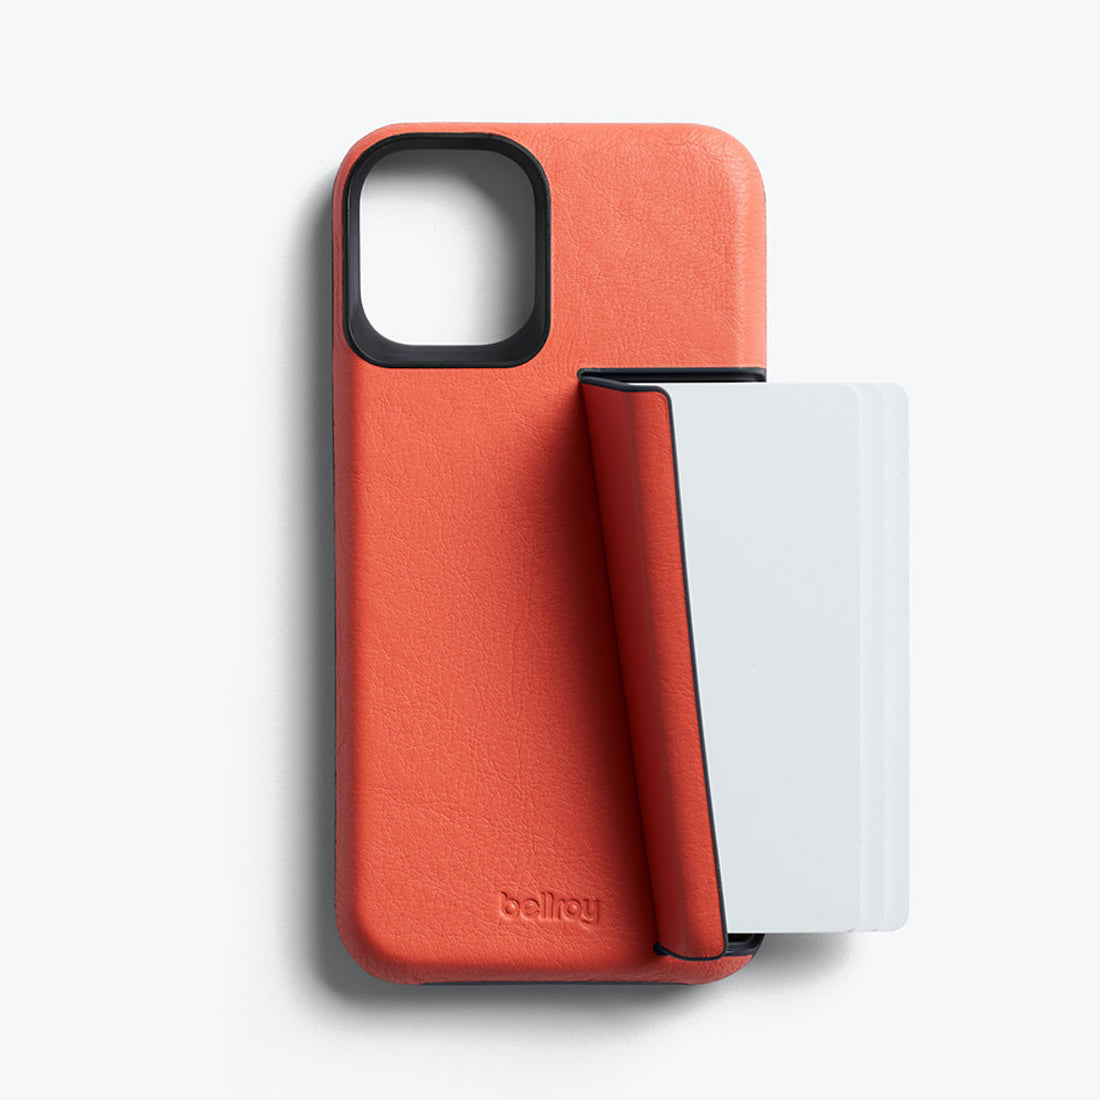 Bellroy 3-Card Genuine Leather Wallet Case For iPhone iPhone 12 mini - CORAL